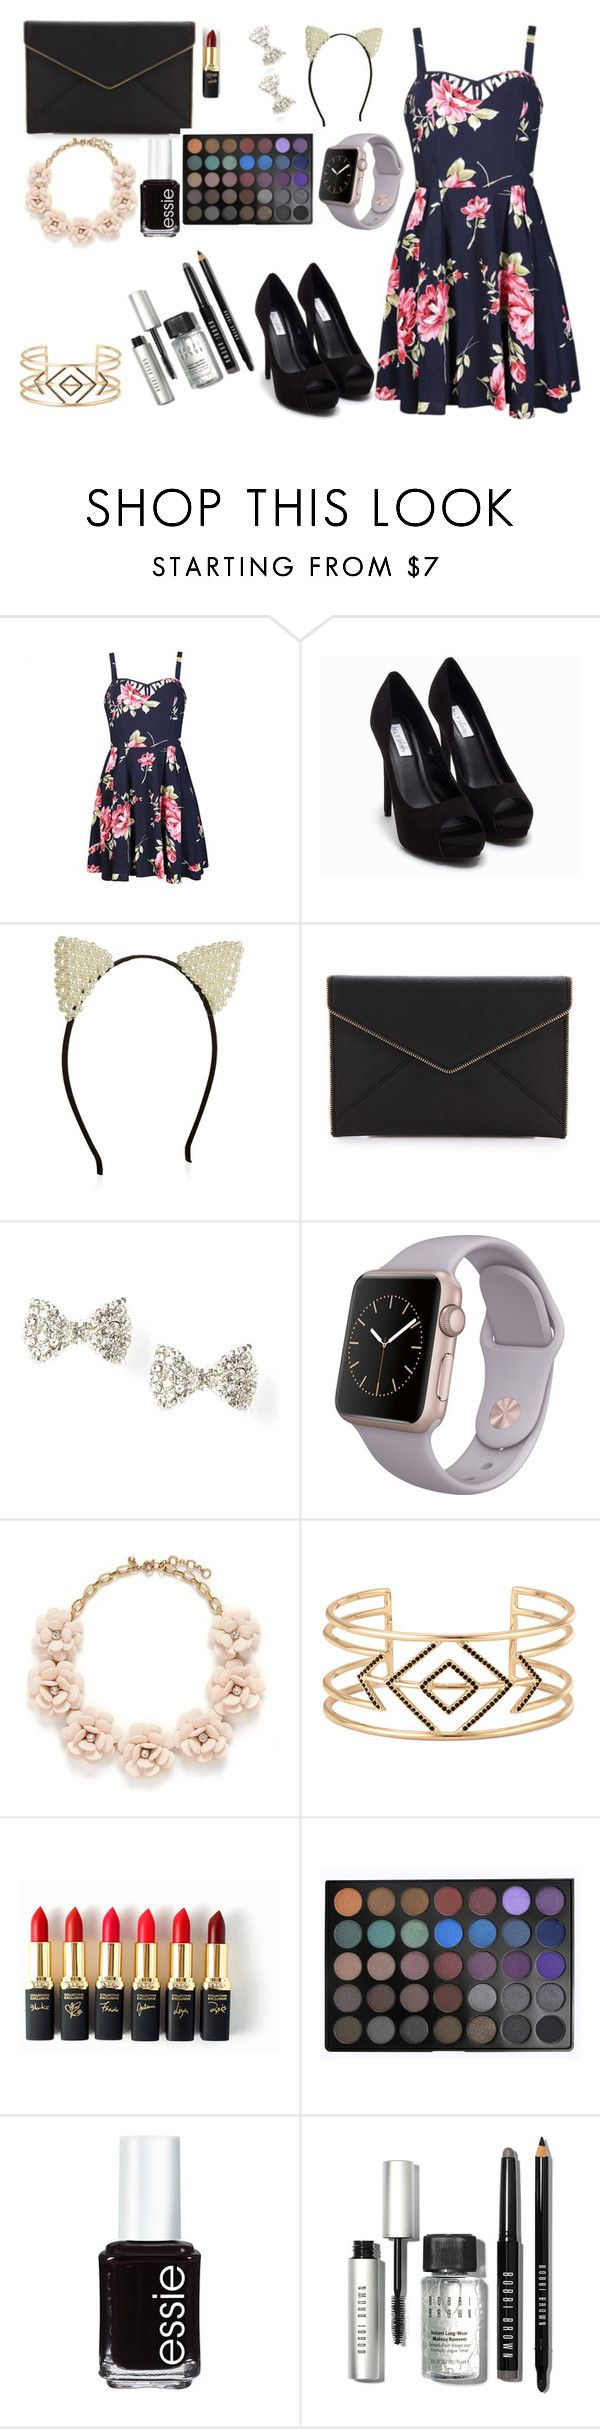 """""""Money Money"""" by penelopejohnson24 on Polyvore featuring Ally Fashion, Nly Shoes, Rebecca Minkoff, J.Crew, Stella & Dot, L'Oréal Paris, Morphe, Essie, Bobbi Brown Cosmetics and women's clothing"""